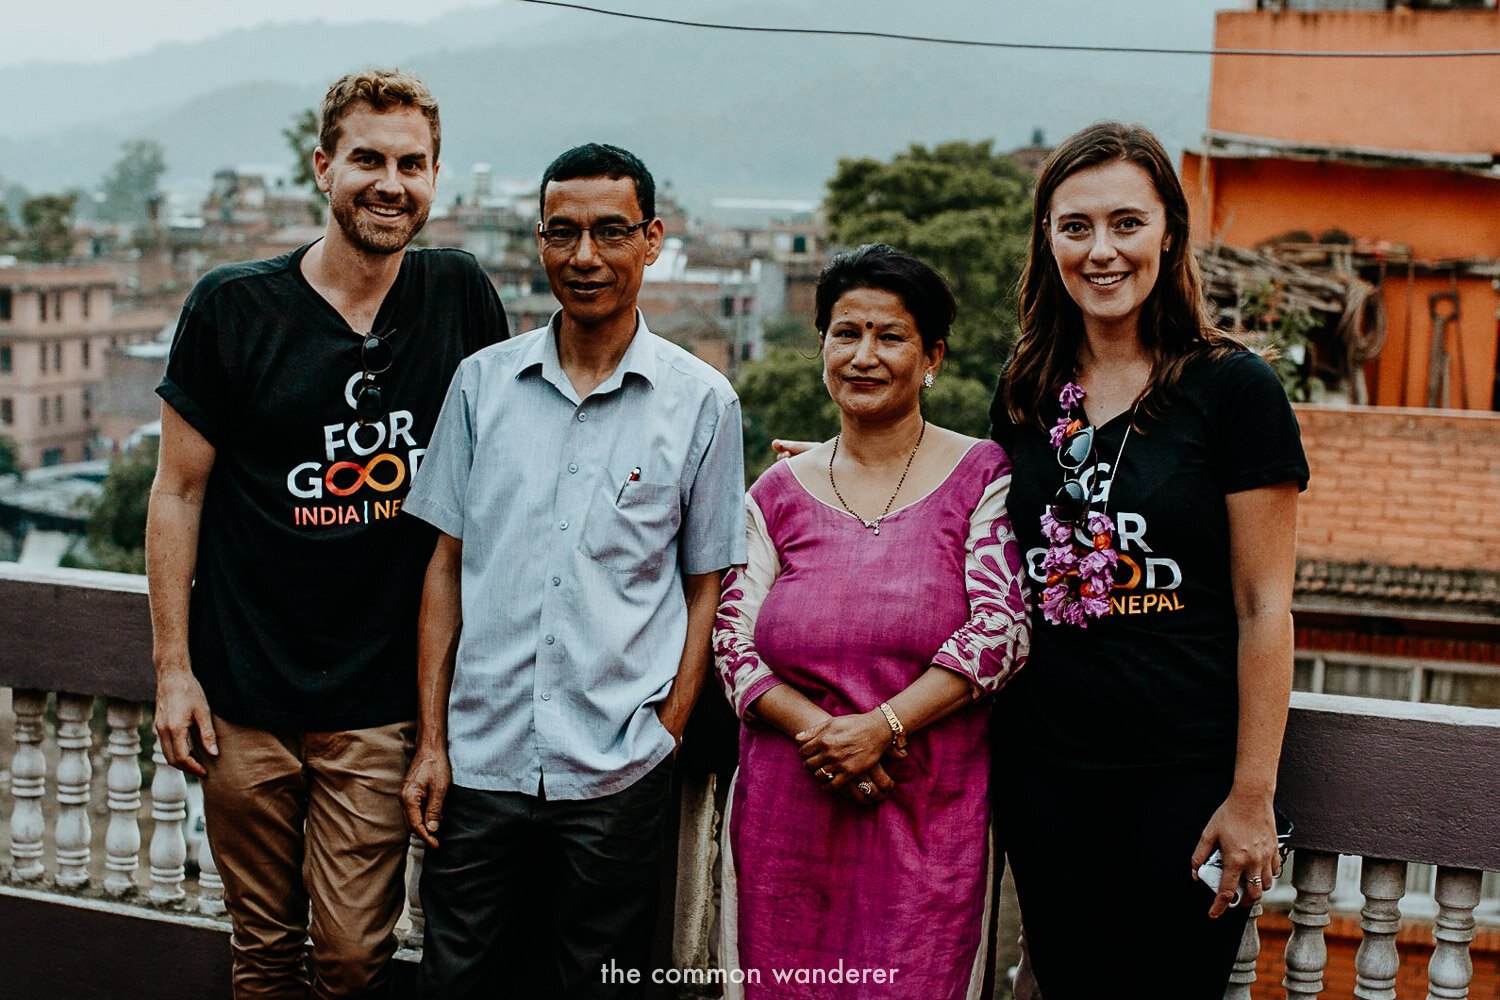 The Panauti Community Homestay program is a great example of Responsible Travel